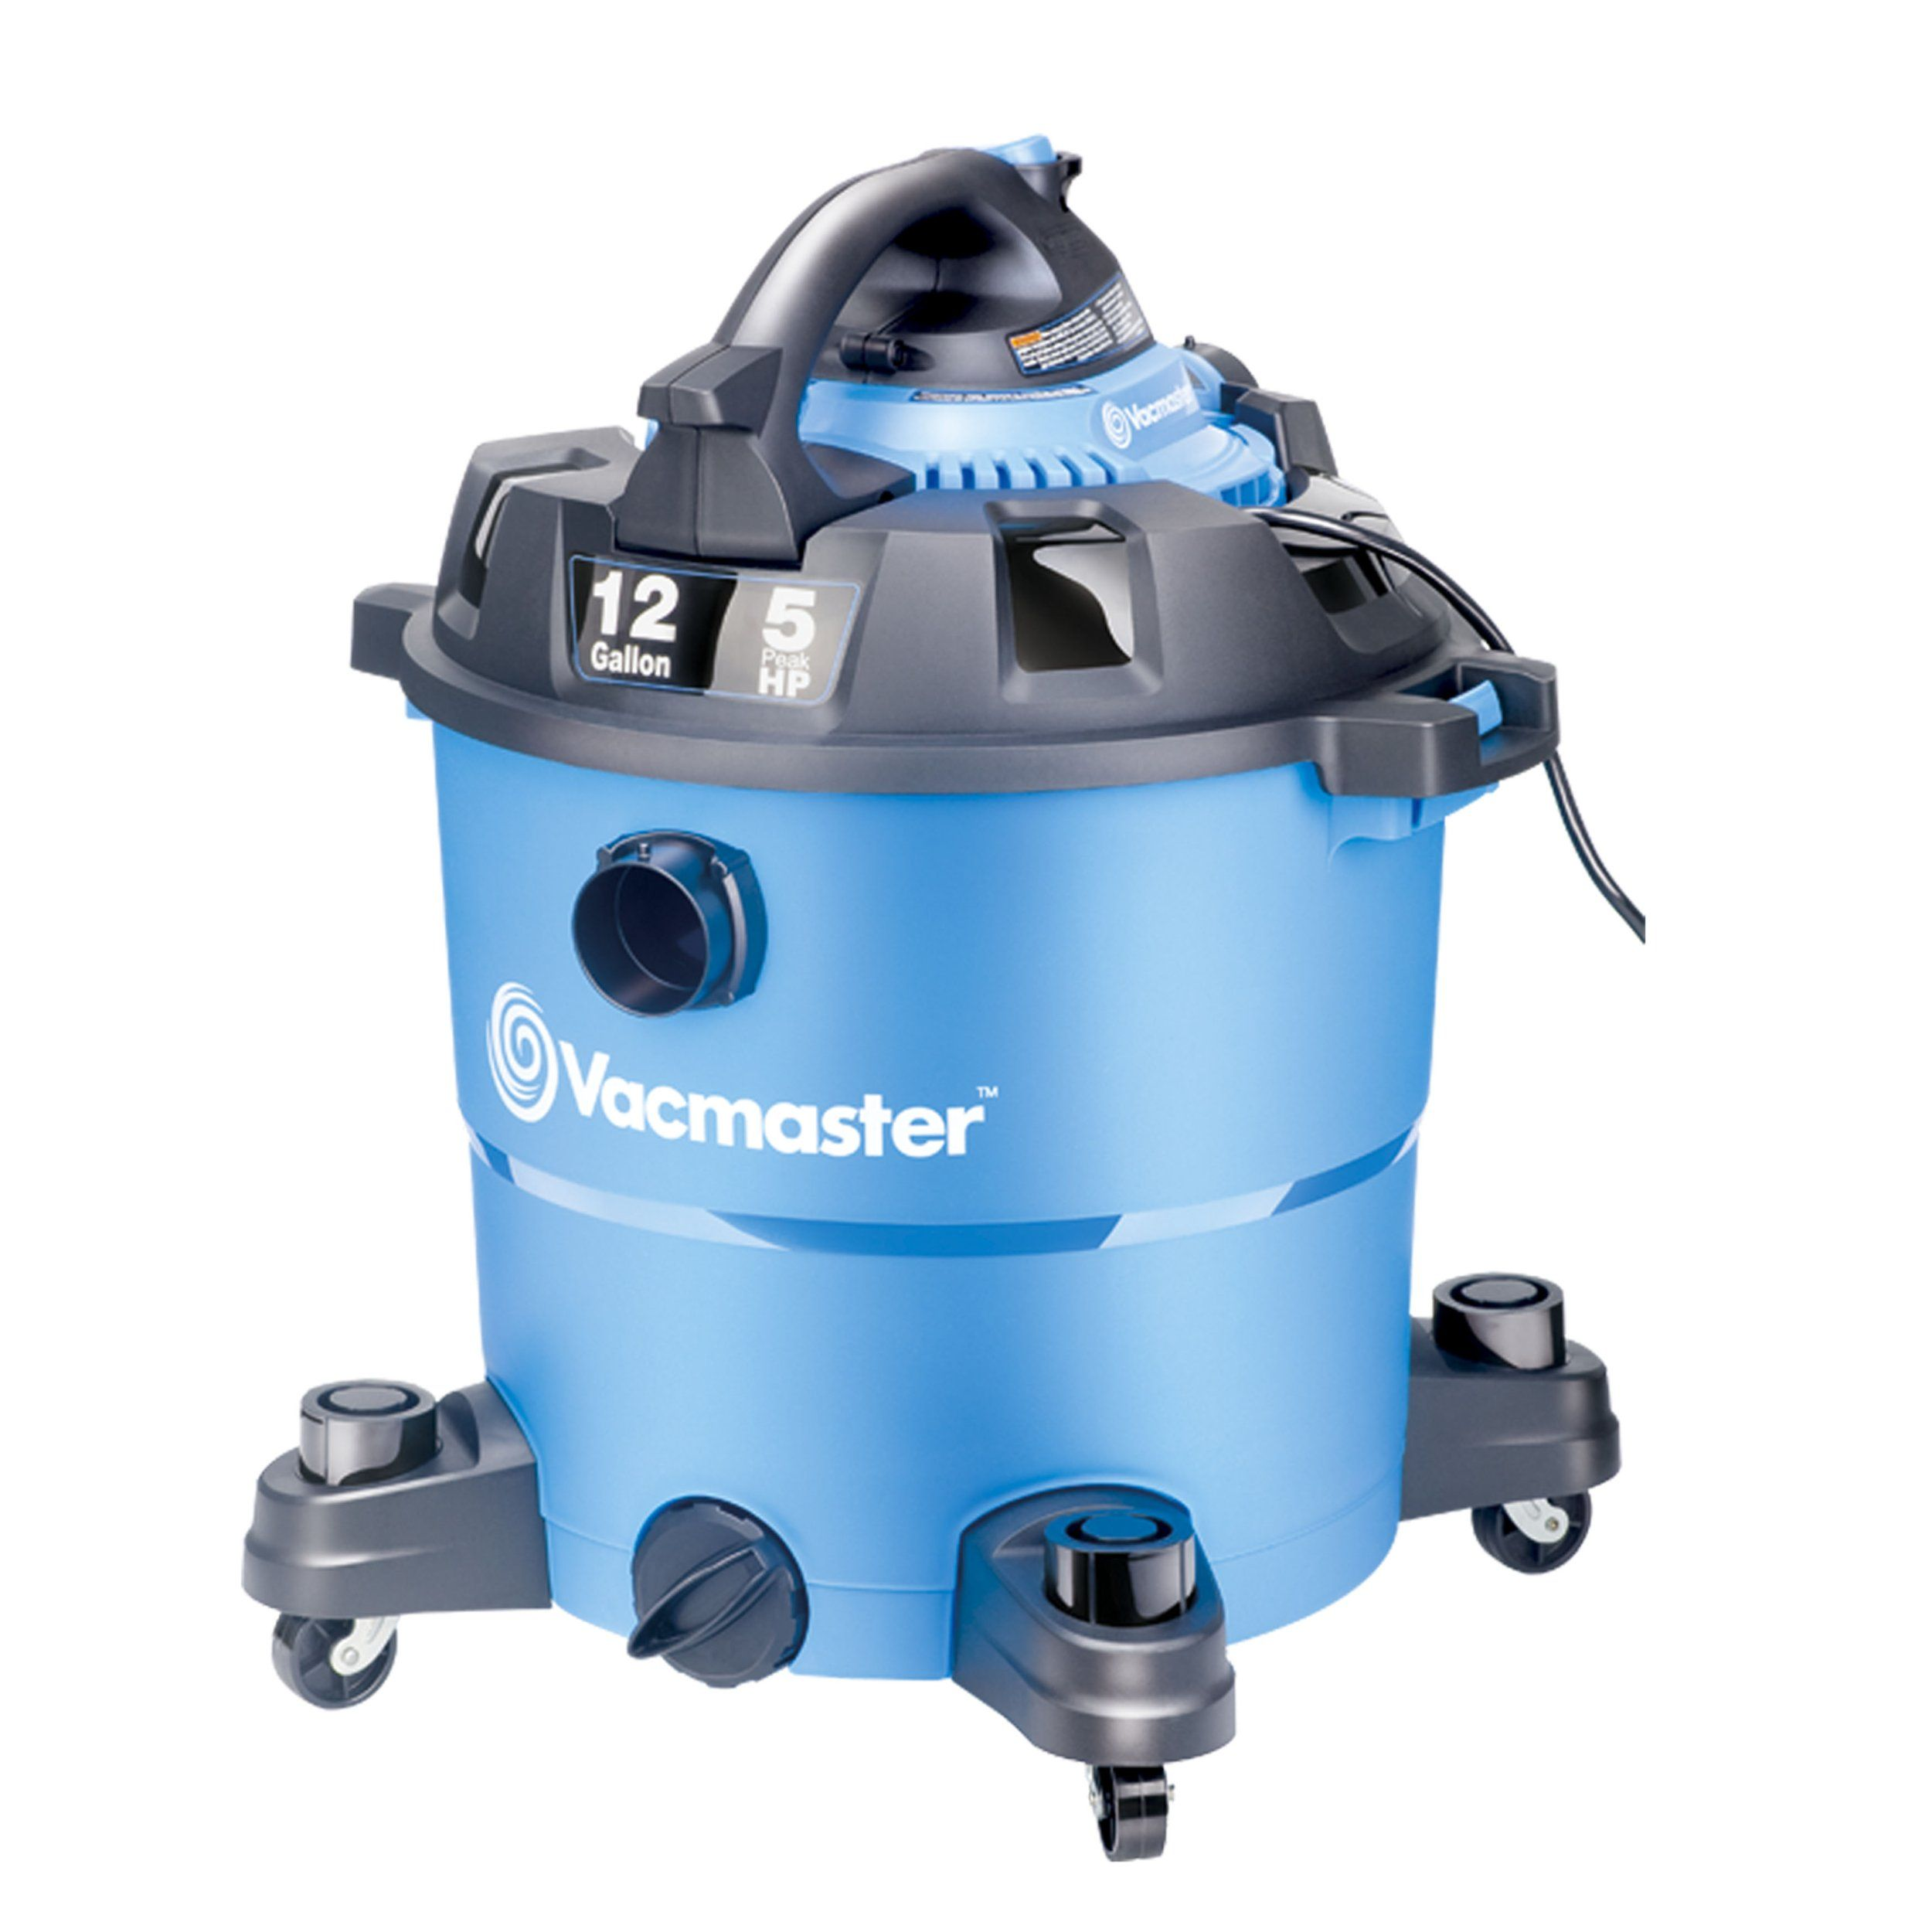 Vacmaster Vbv1210 Detachable Blower Wet Dry Vacuum 12 Gallon 5 Peak Hp Wet Dry Vacuum Shop Vacuum Wet Dry Vacuum Cleaner